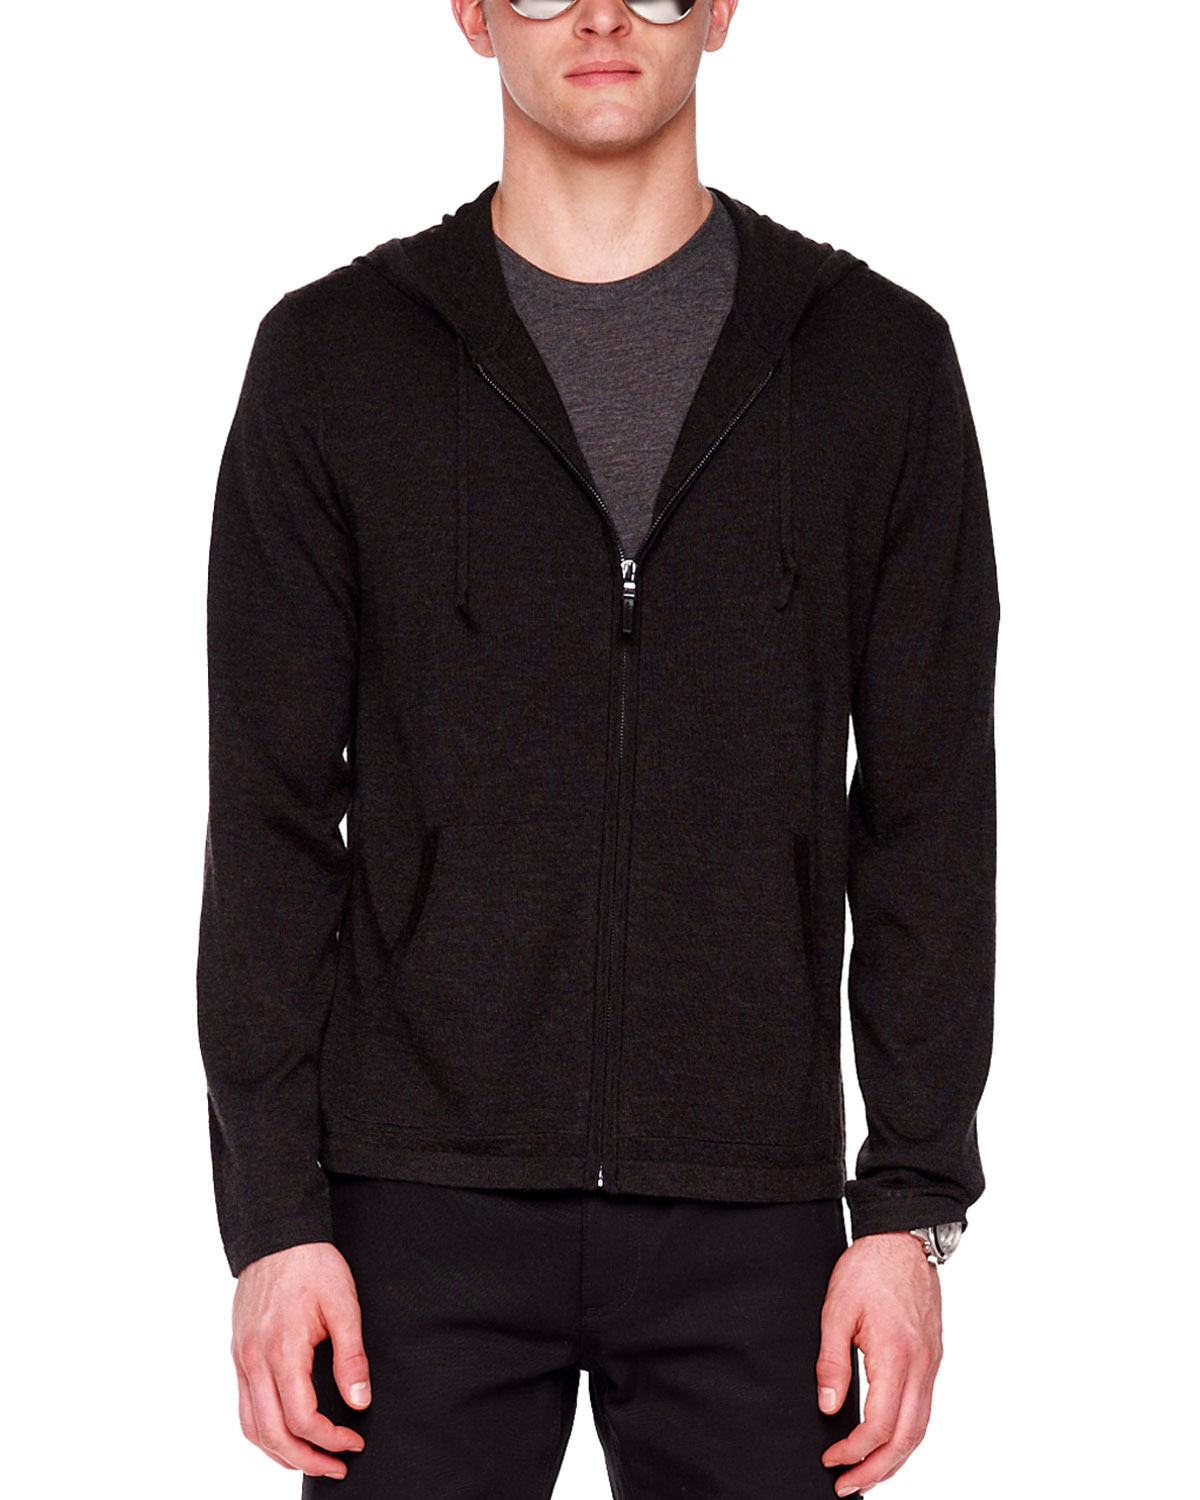 Michael kors Cashmere Zip Hoodie in Black for Men | Lyst